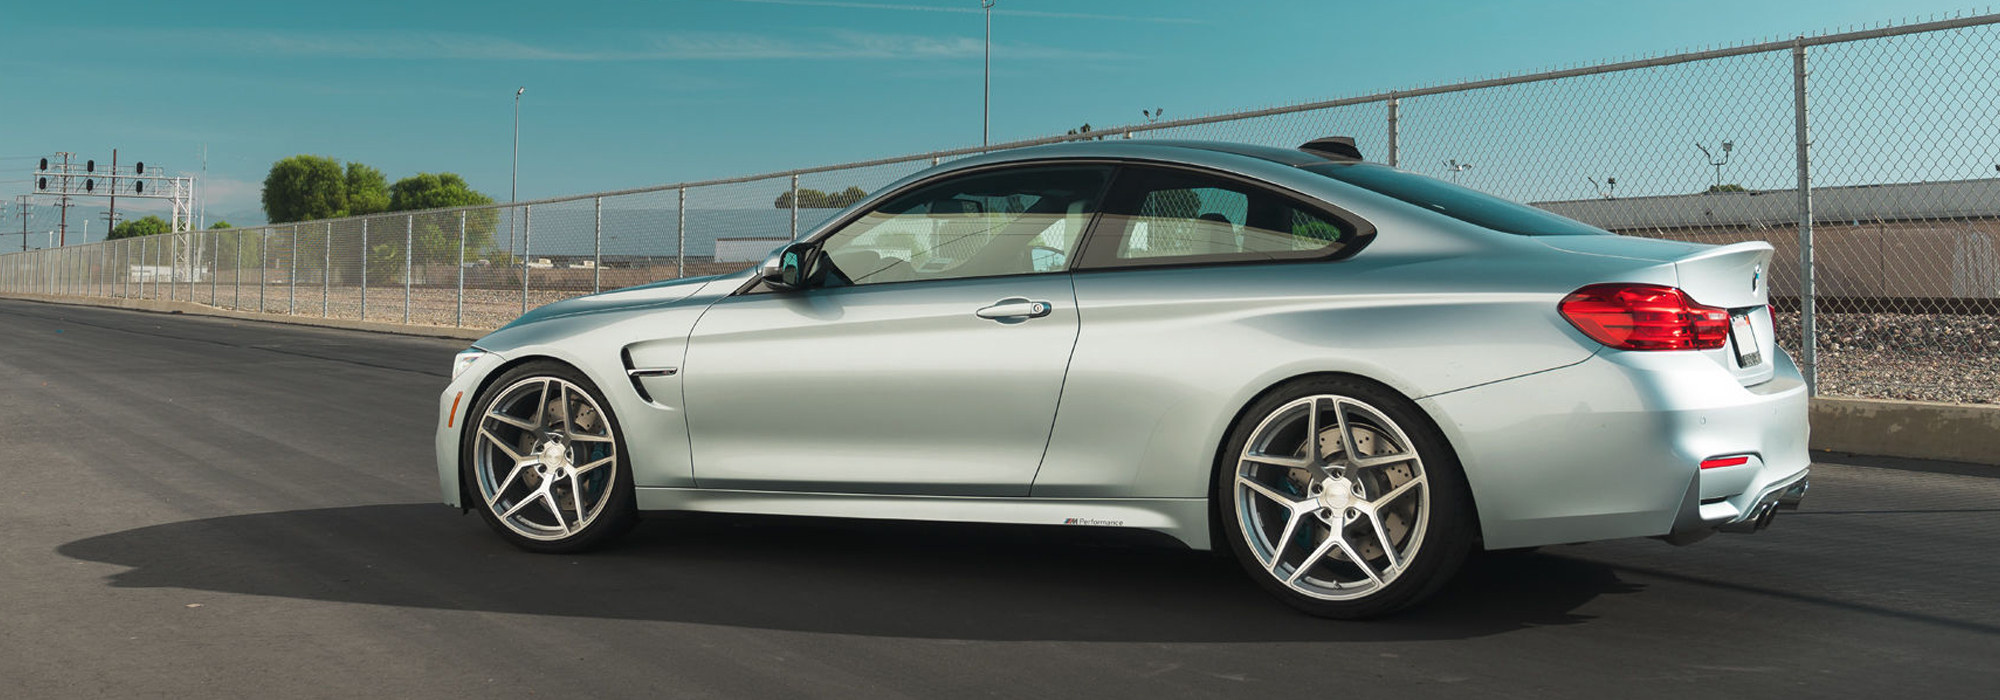 BMW F82 M4 with 20″ M650 Wheels